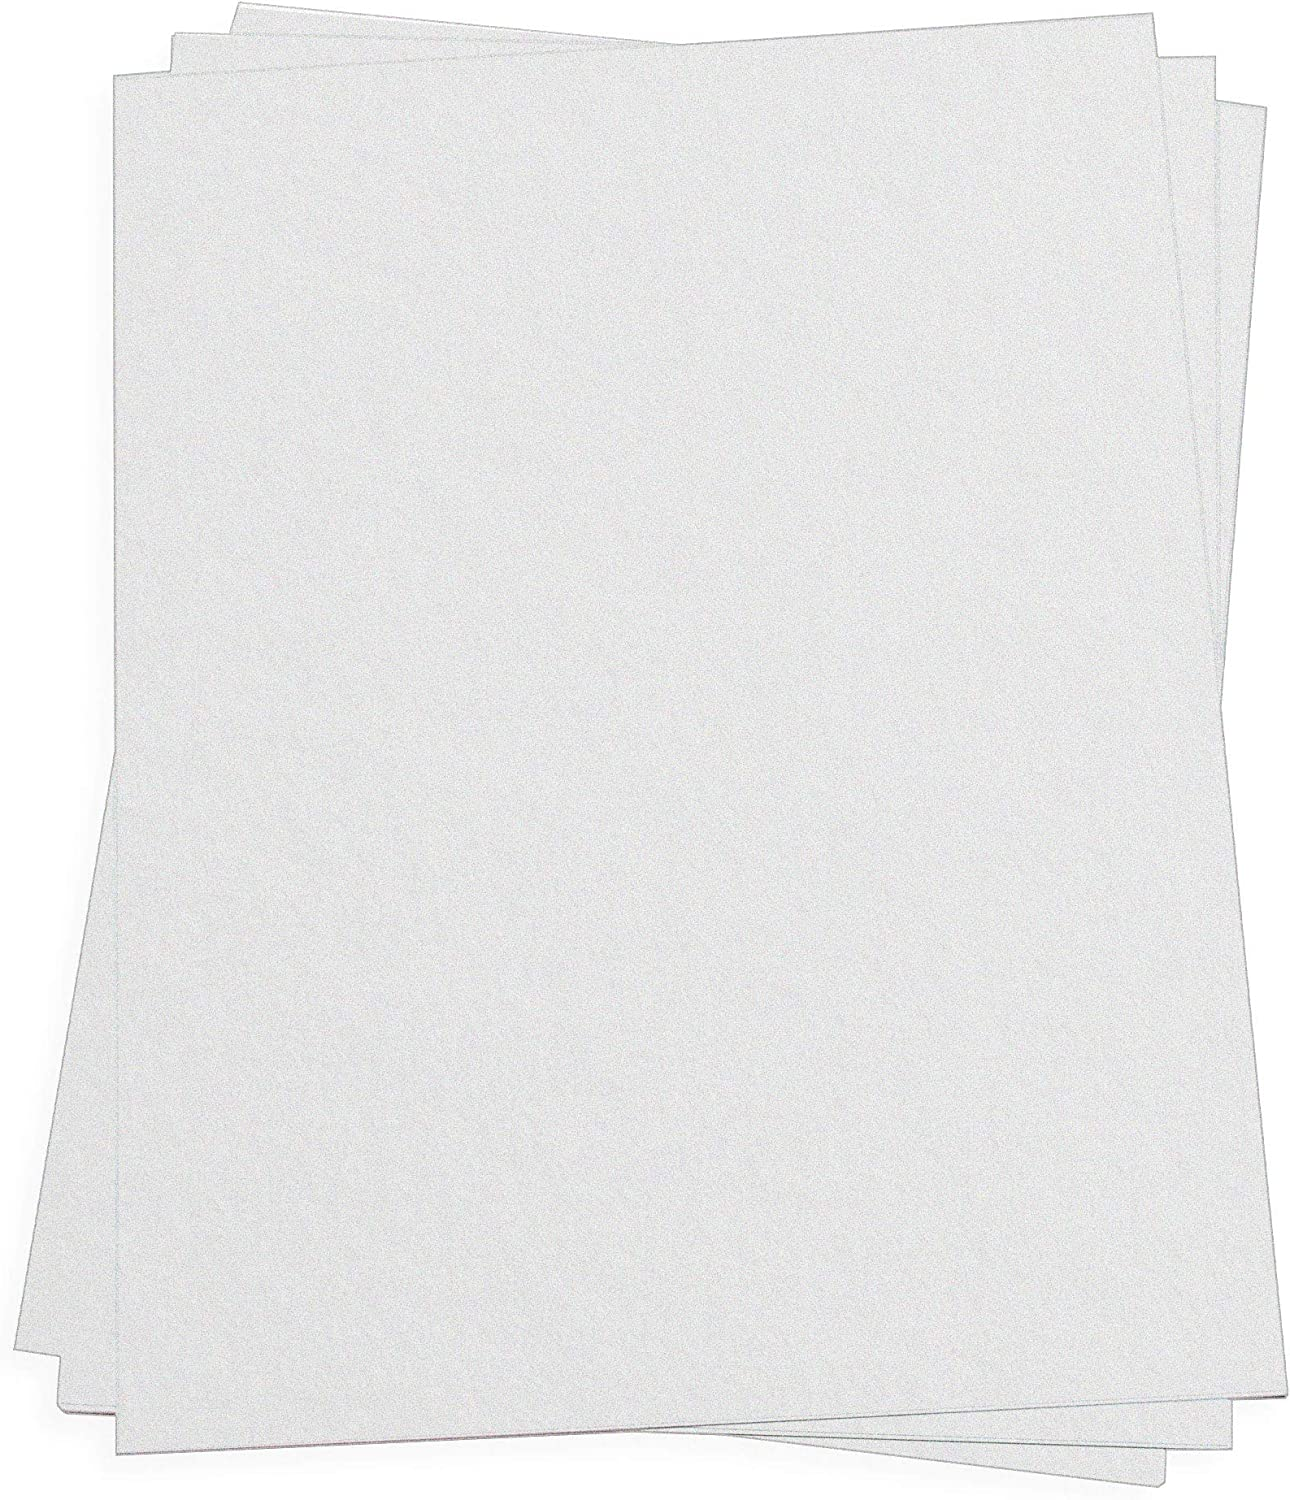 Rag White Paper Fort Worth Mall - 8 1 2 x 14 Pack Max 61% OFF 25 Cycle Text 81lb Bio